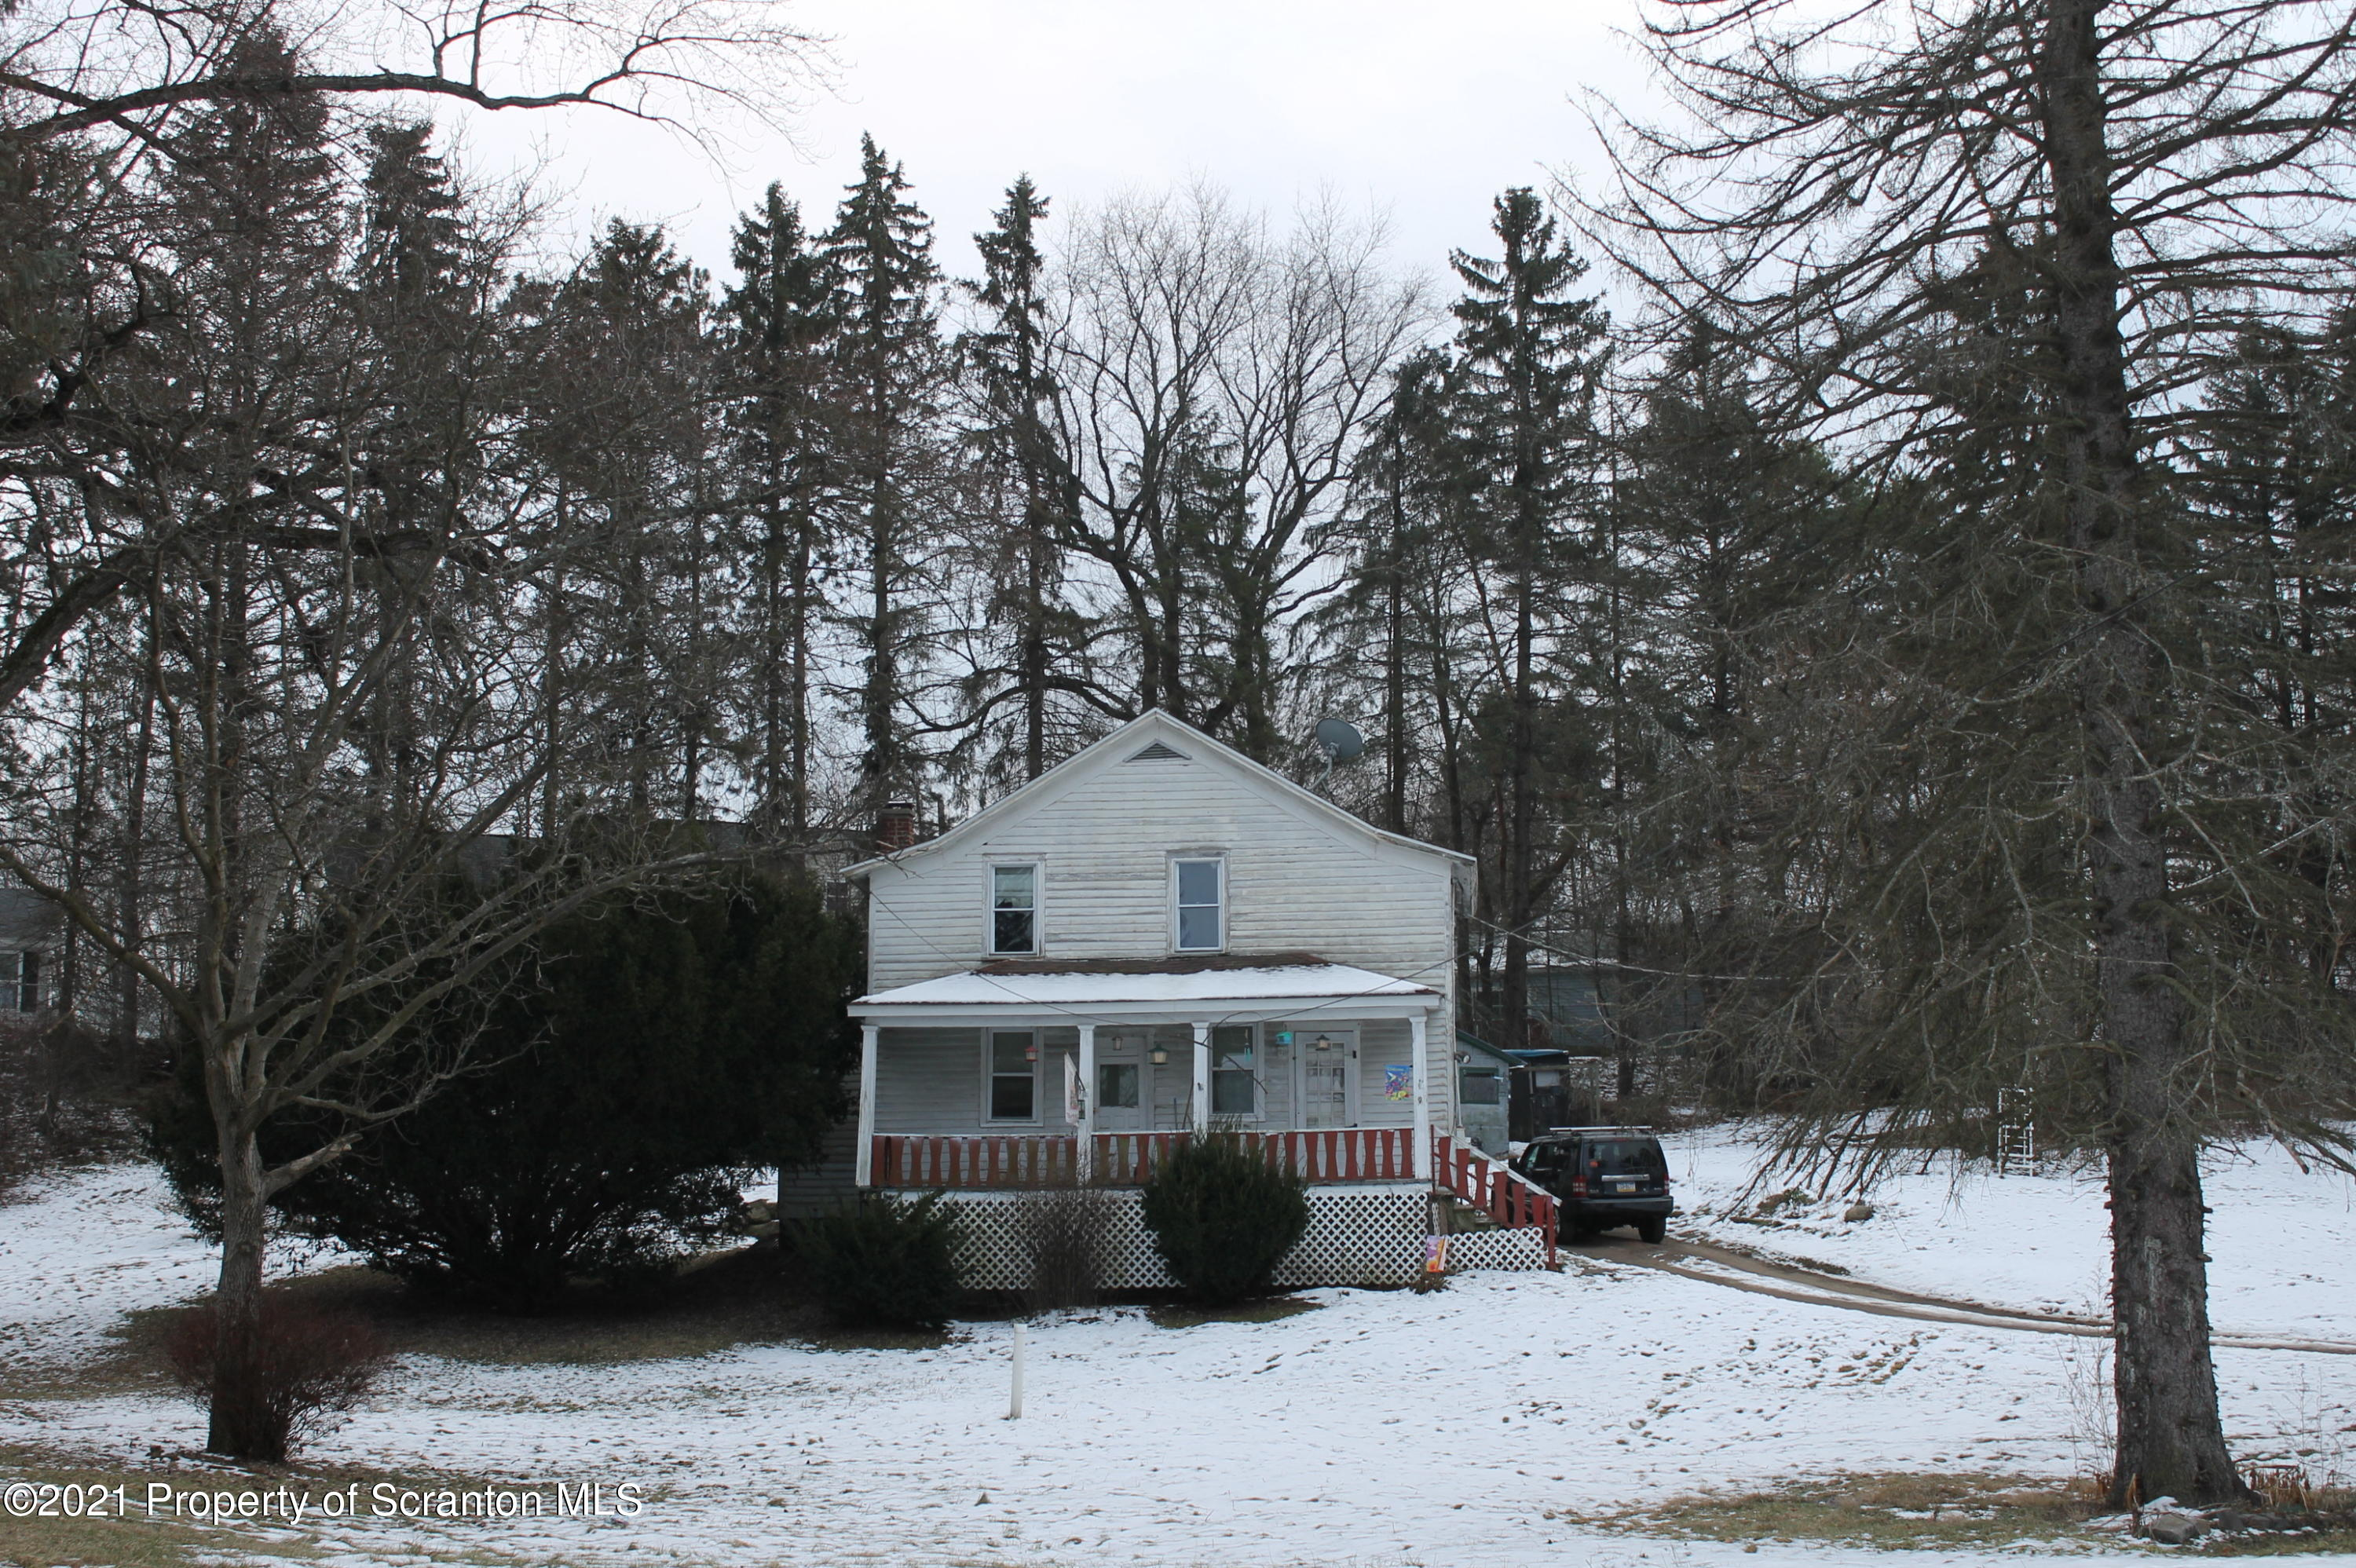 135 Erie St, Jessup, Pennsylvania 18434, 3 Bedrooms Bedrooms, 6 Rooms Rooms,2 BathroomsBathrooms,Single Family,For Sale,Erie,21-1174